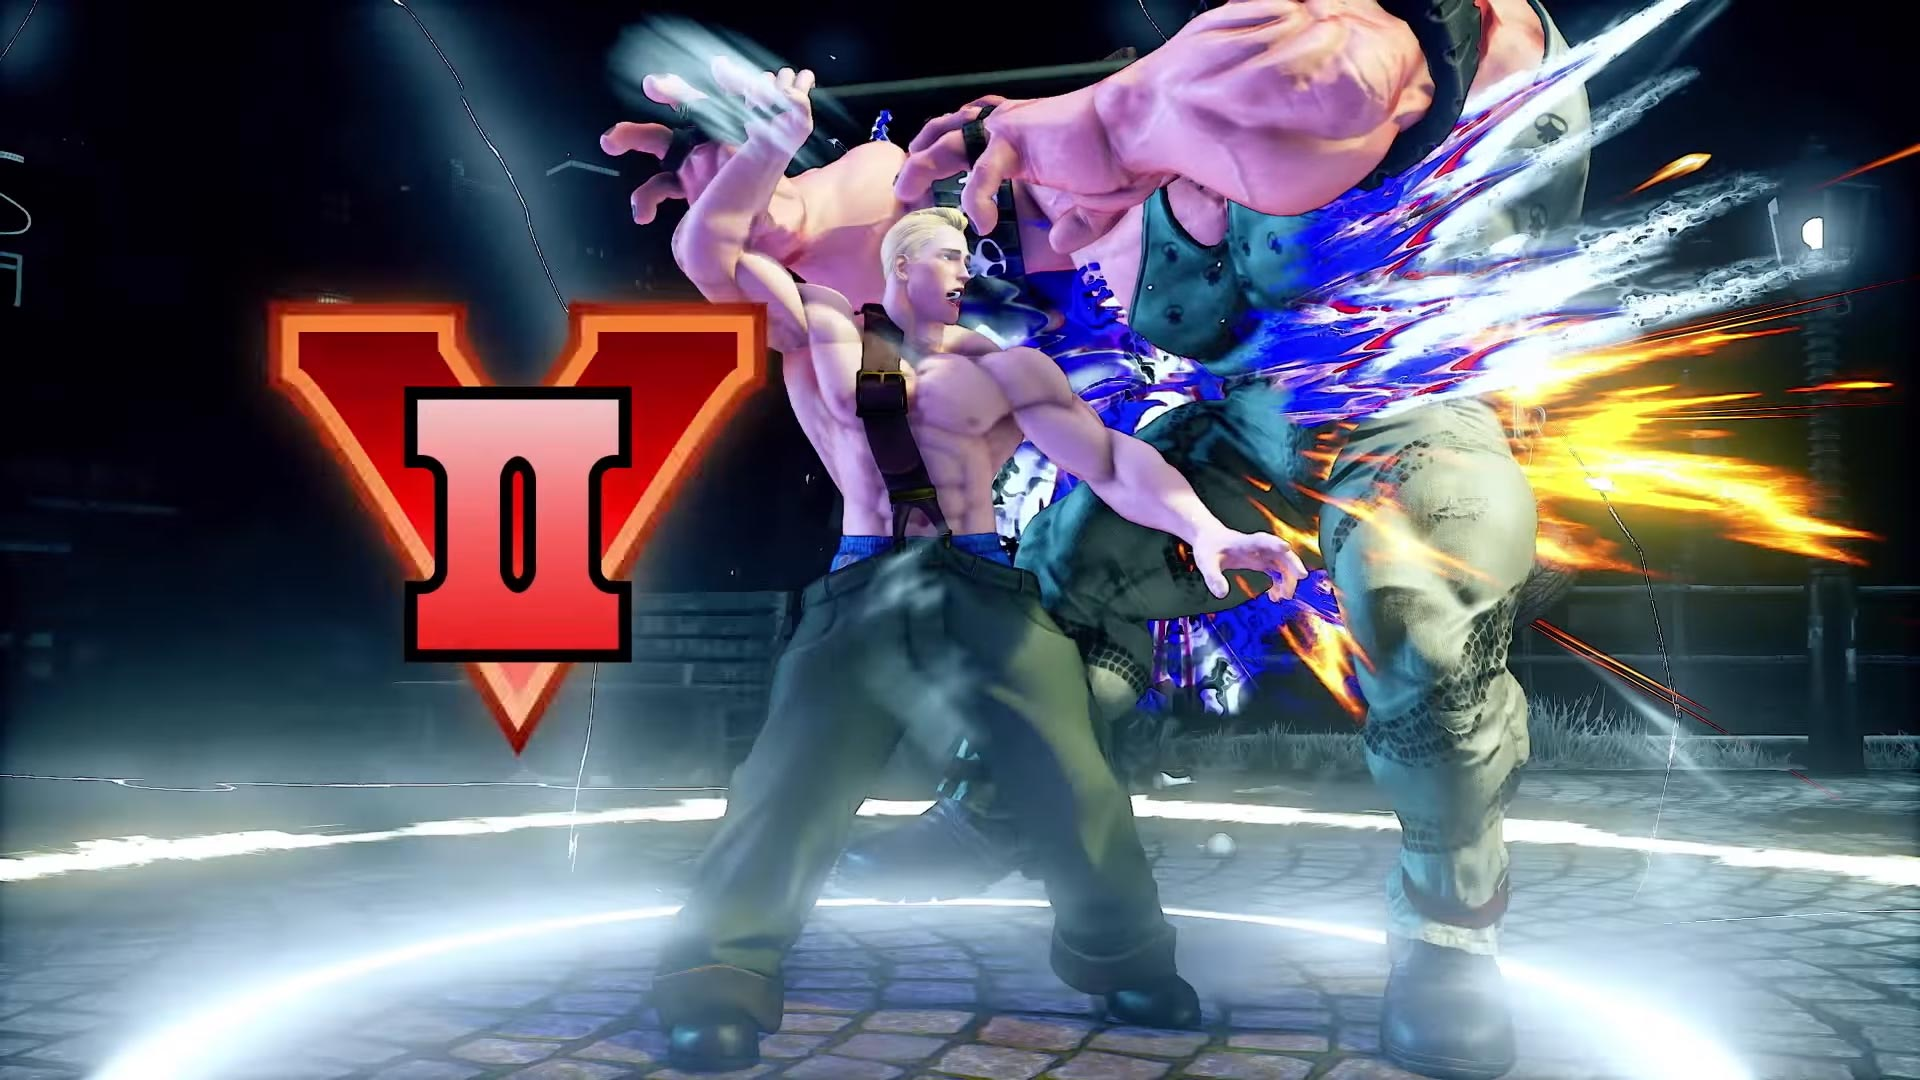 Cody Street Fighter 5: Arcade Edition reveal 7 out of 9 image gallery